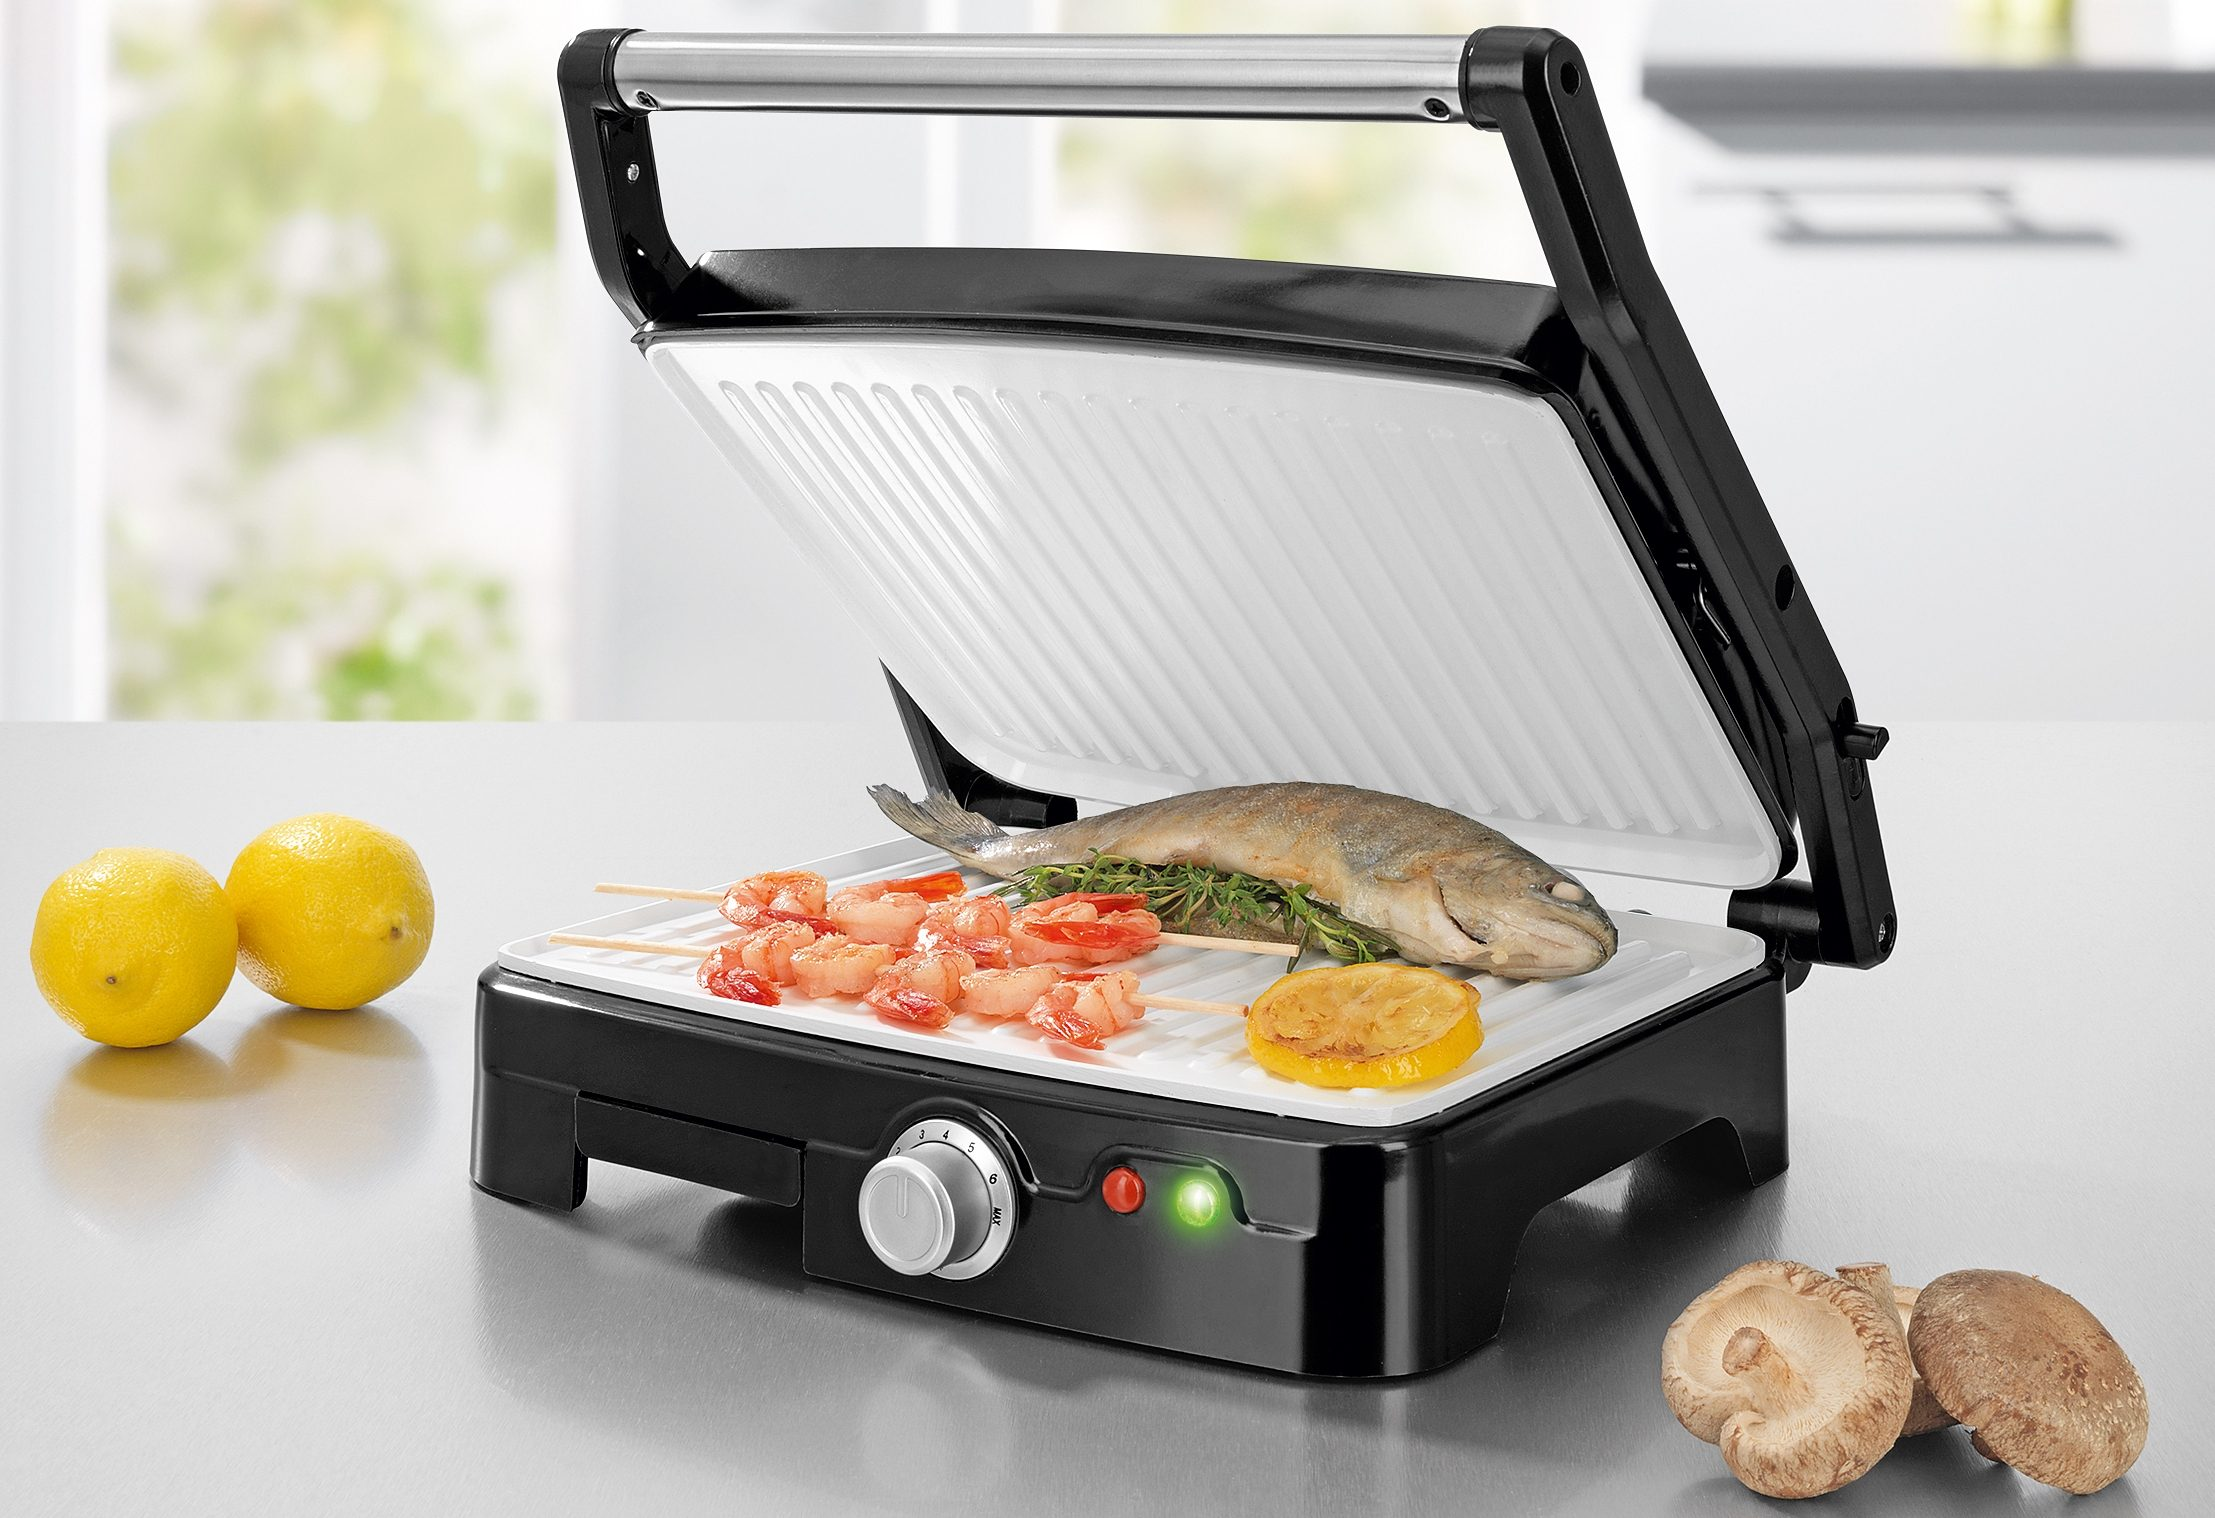 gourmetmaxx Turbo Grill Keramik Plus, 1800 Watt